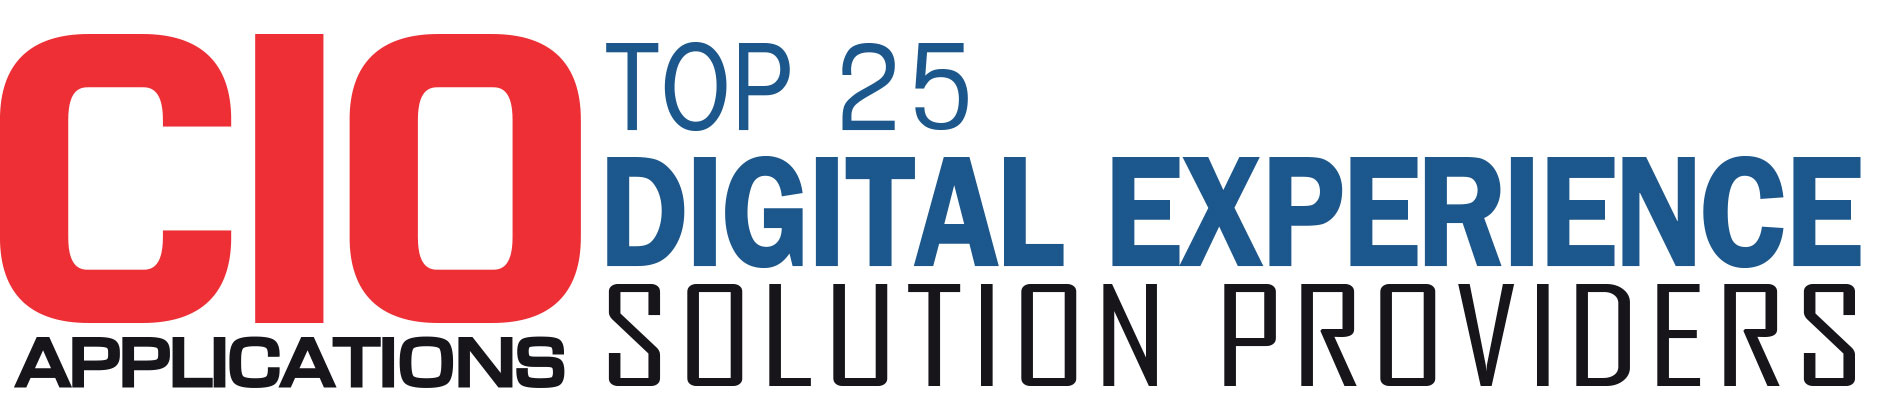 Top Digital Experience Solution Companies